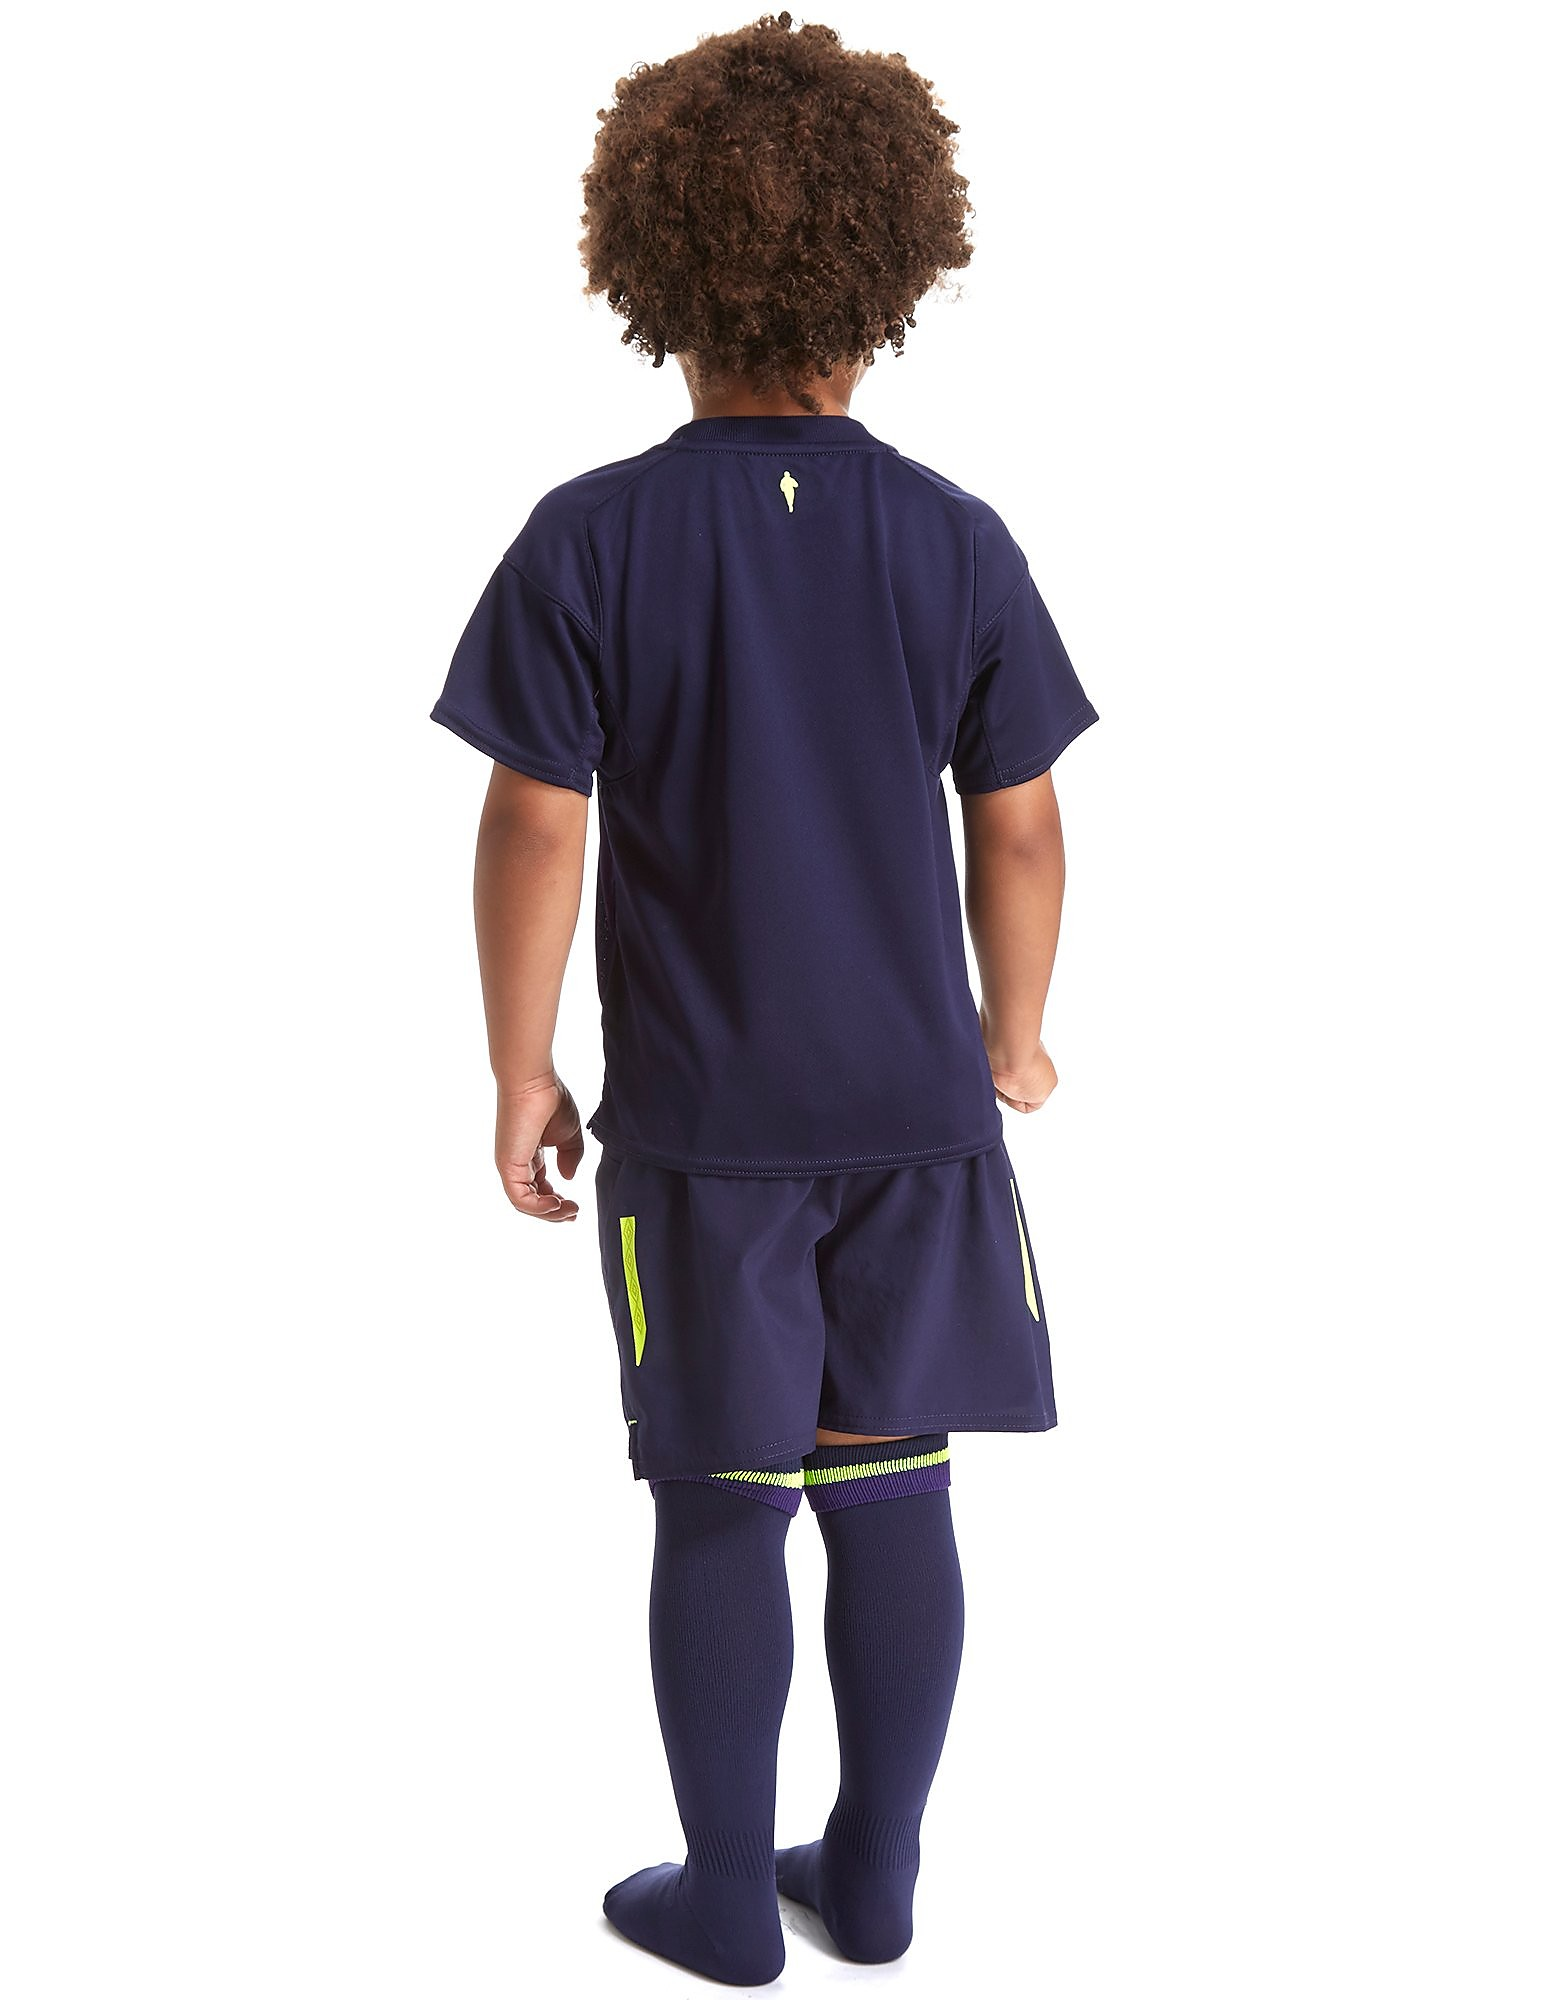 Umbro Everton FC 2017/18 Third Kit Childrens